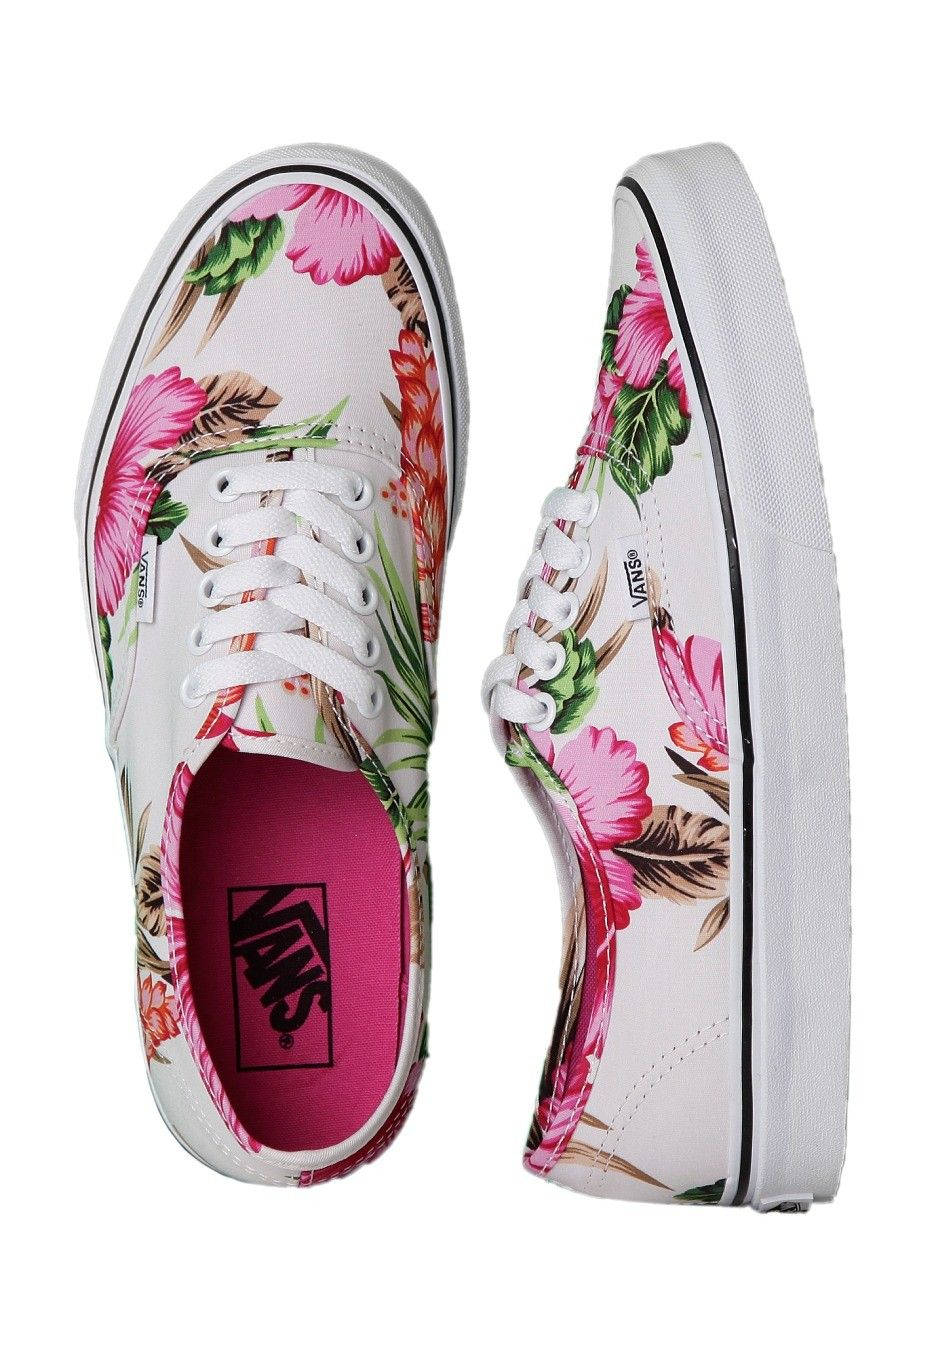 97b7918a7f Vans - Authentic Hawaiian Floral White - Girl Shoes - Official Merchandise  Online Shop - Impericon.com Worldwide